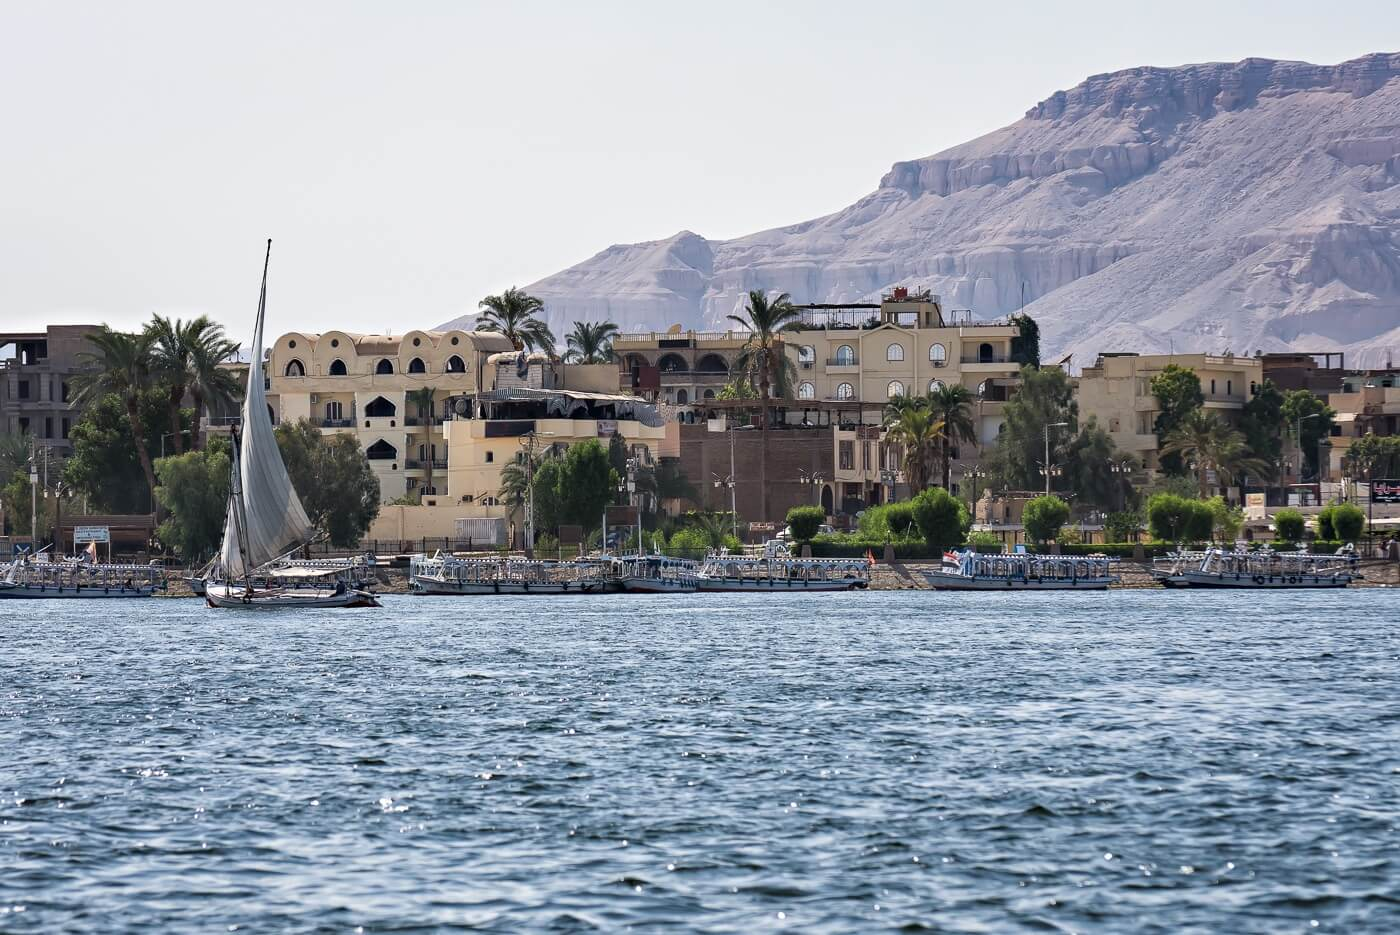 Boats on the river Nile, Luxor, Egypt - Photo by Zed Sindelar of CuriousZed Photography